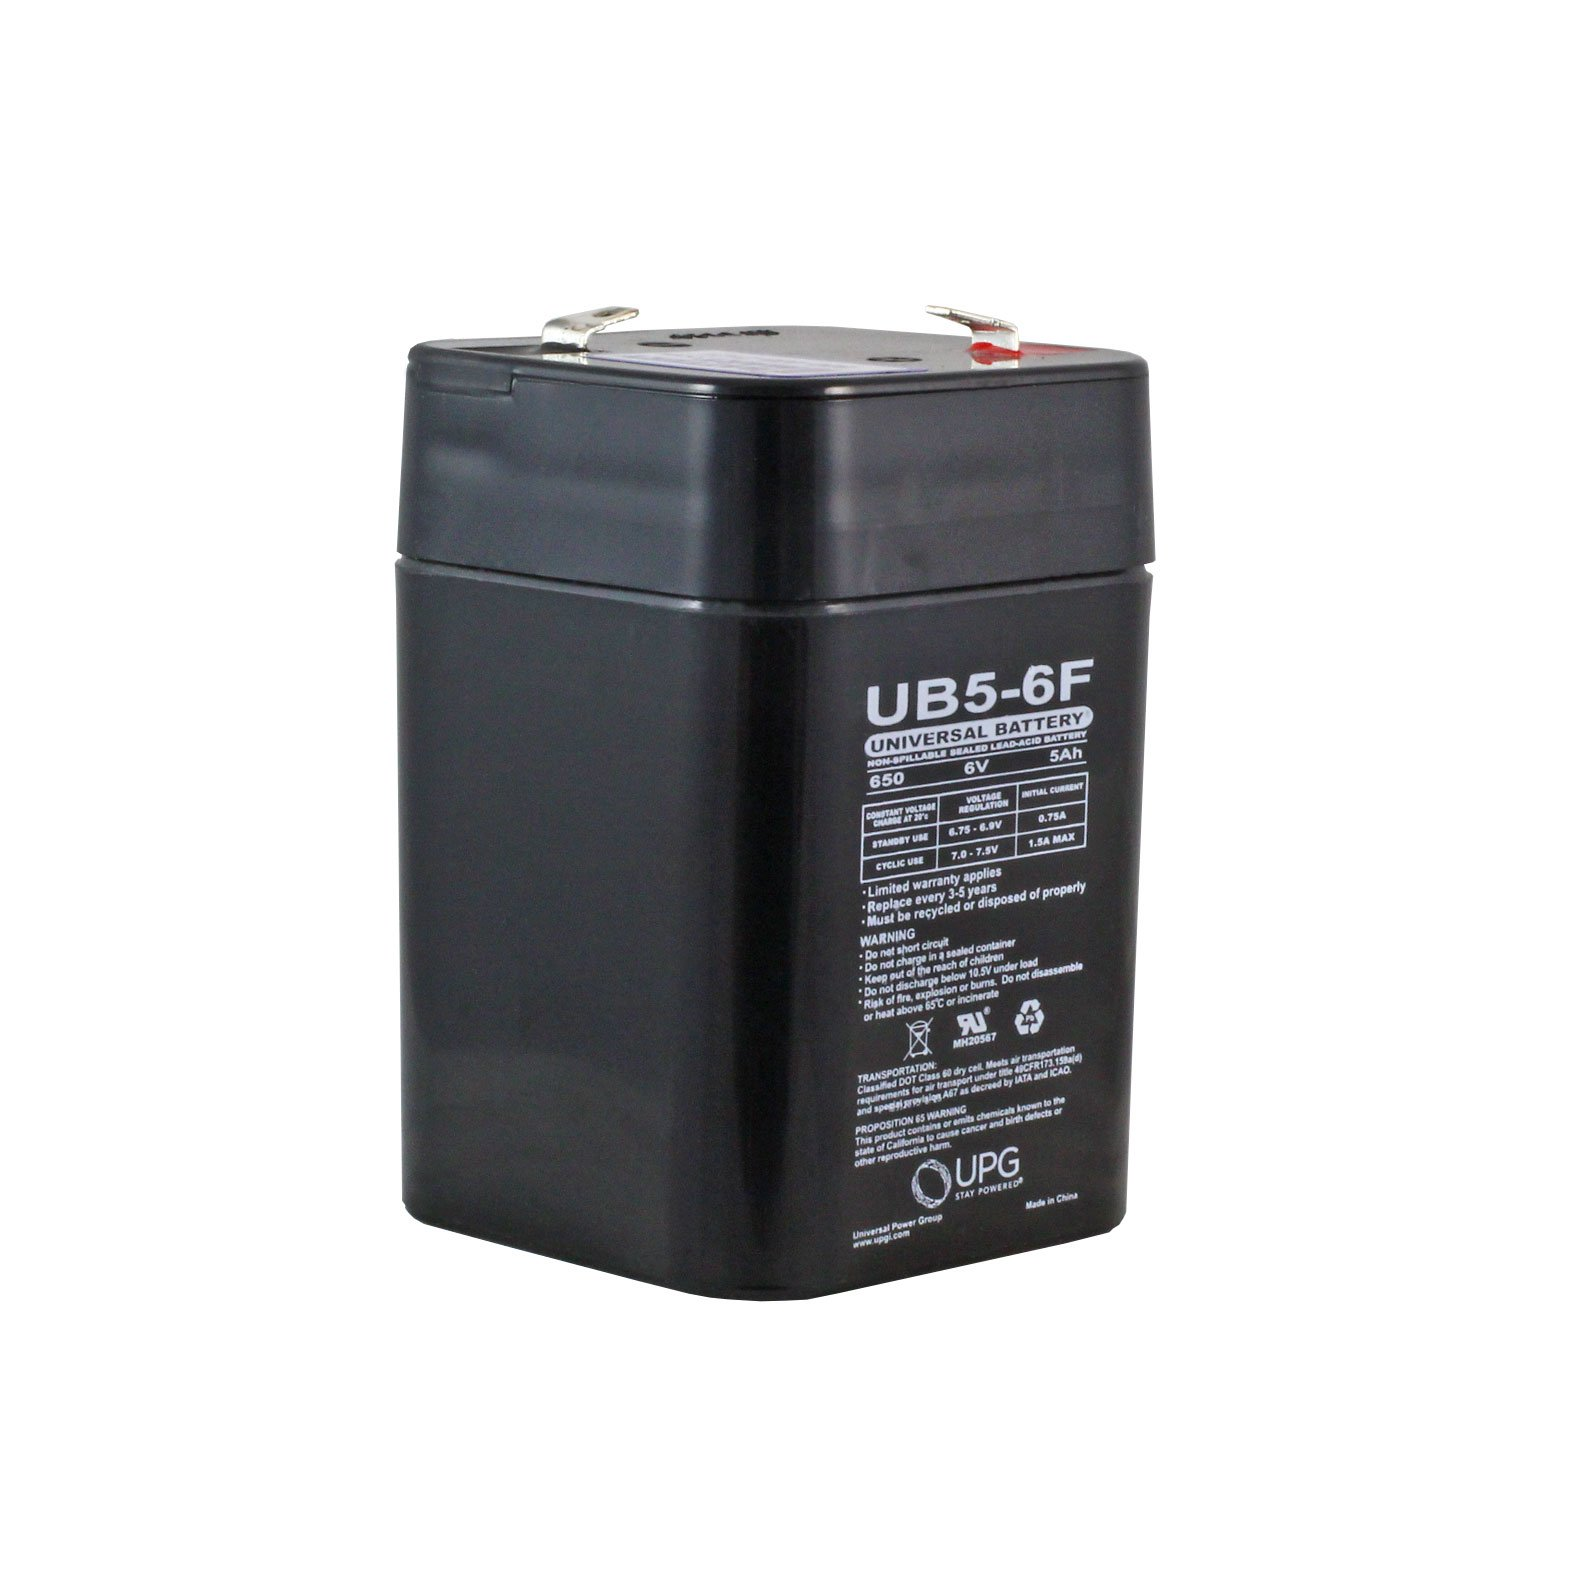 6 volt 5 ah sealed lead acid rechargeable battery with f1 terminal free shipping. Black Bedroom Furniture Sets. Home Design Ideas